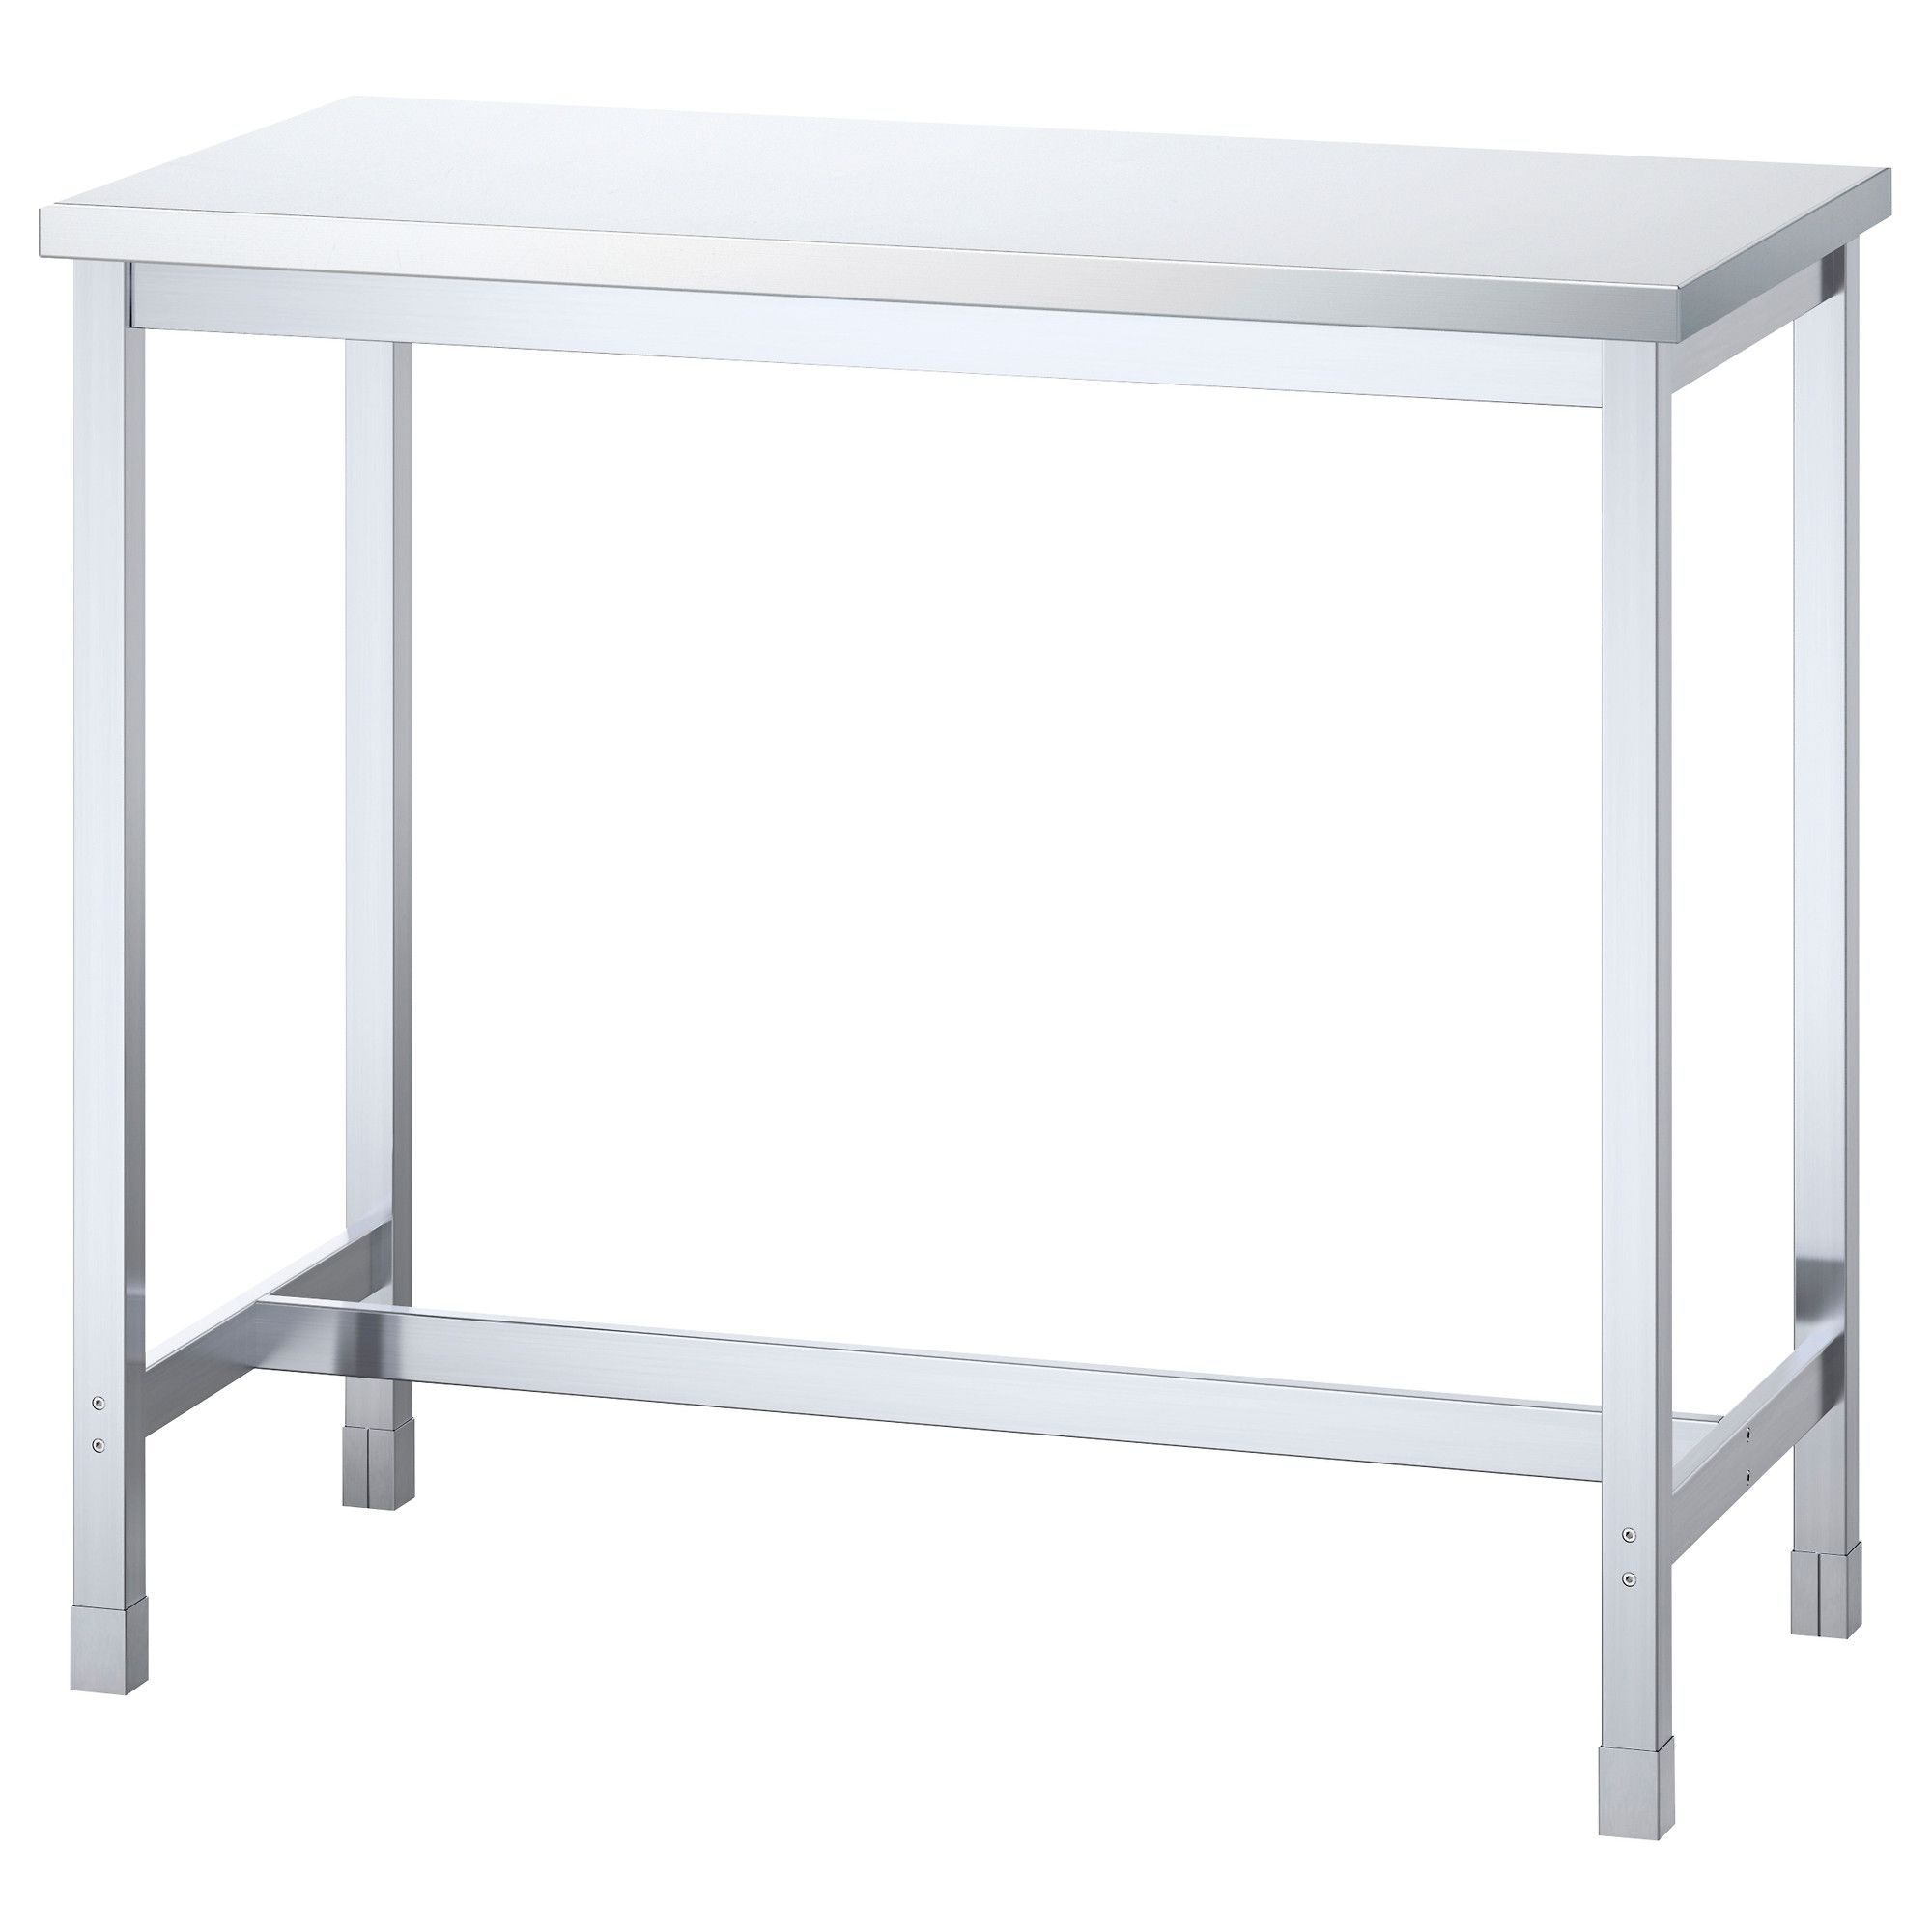 utby bar table stainless steel ikea for dan s desk standing